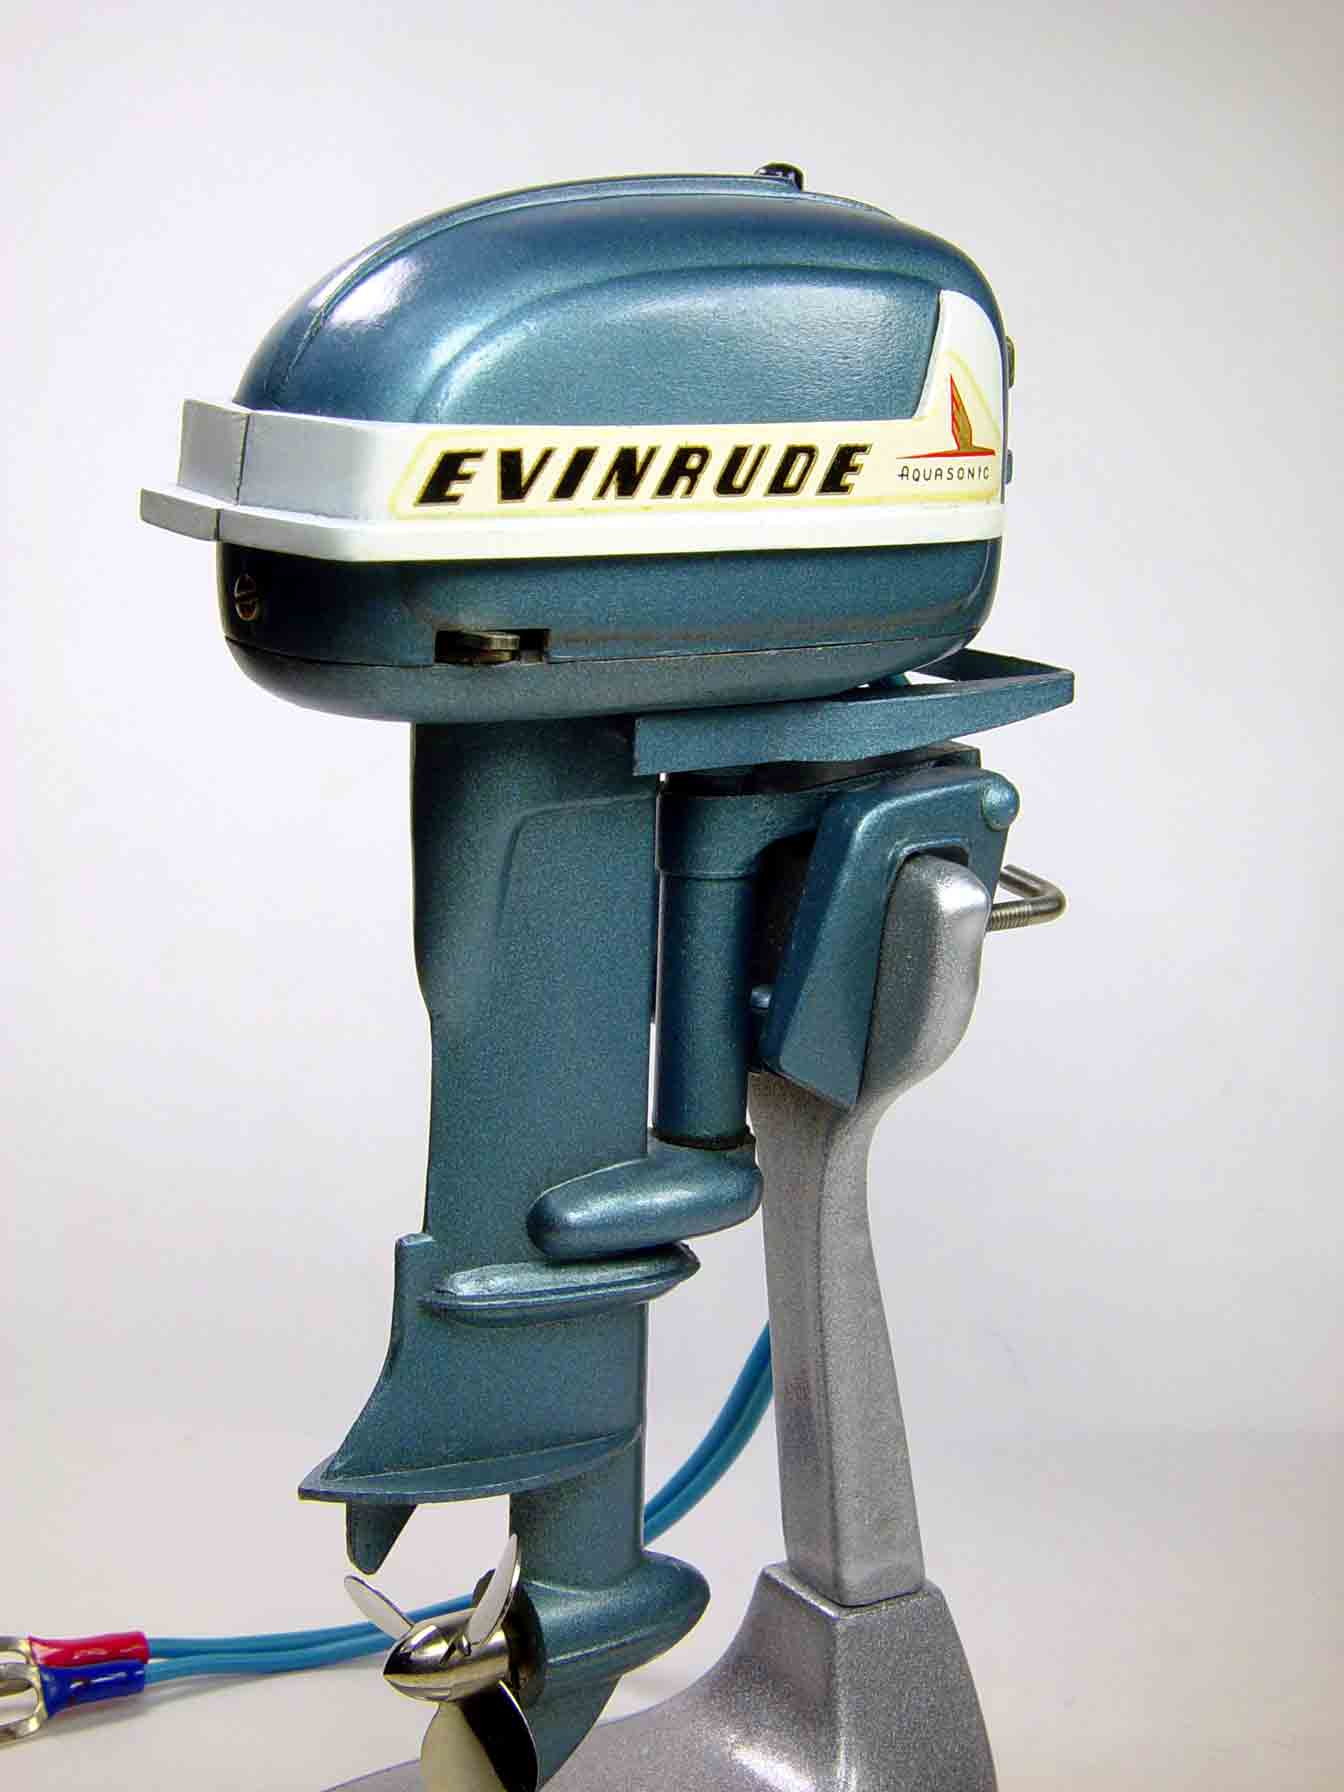 Evinrude 25 Hp Outboard Motor For Sale Evinrude Free